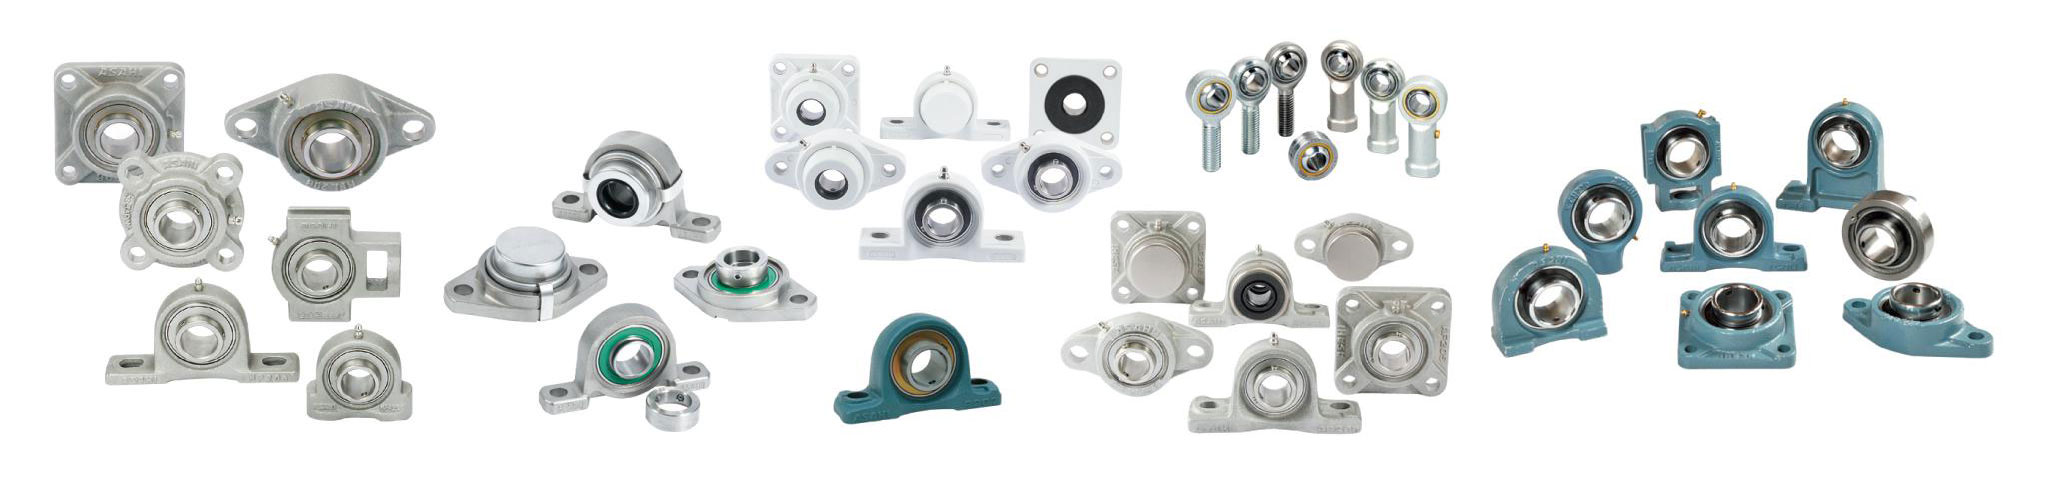 ASAHI Ball bearing units